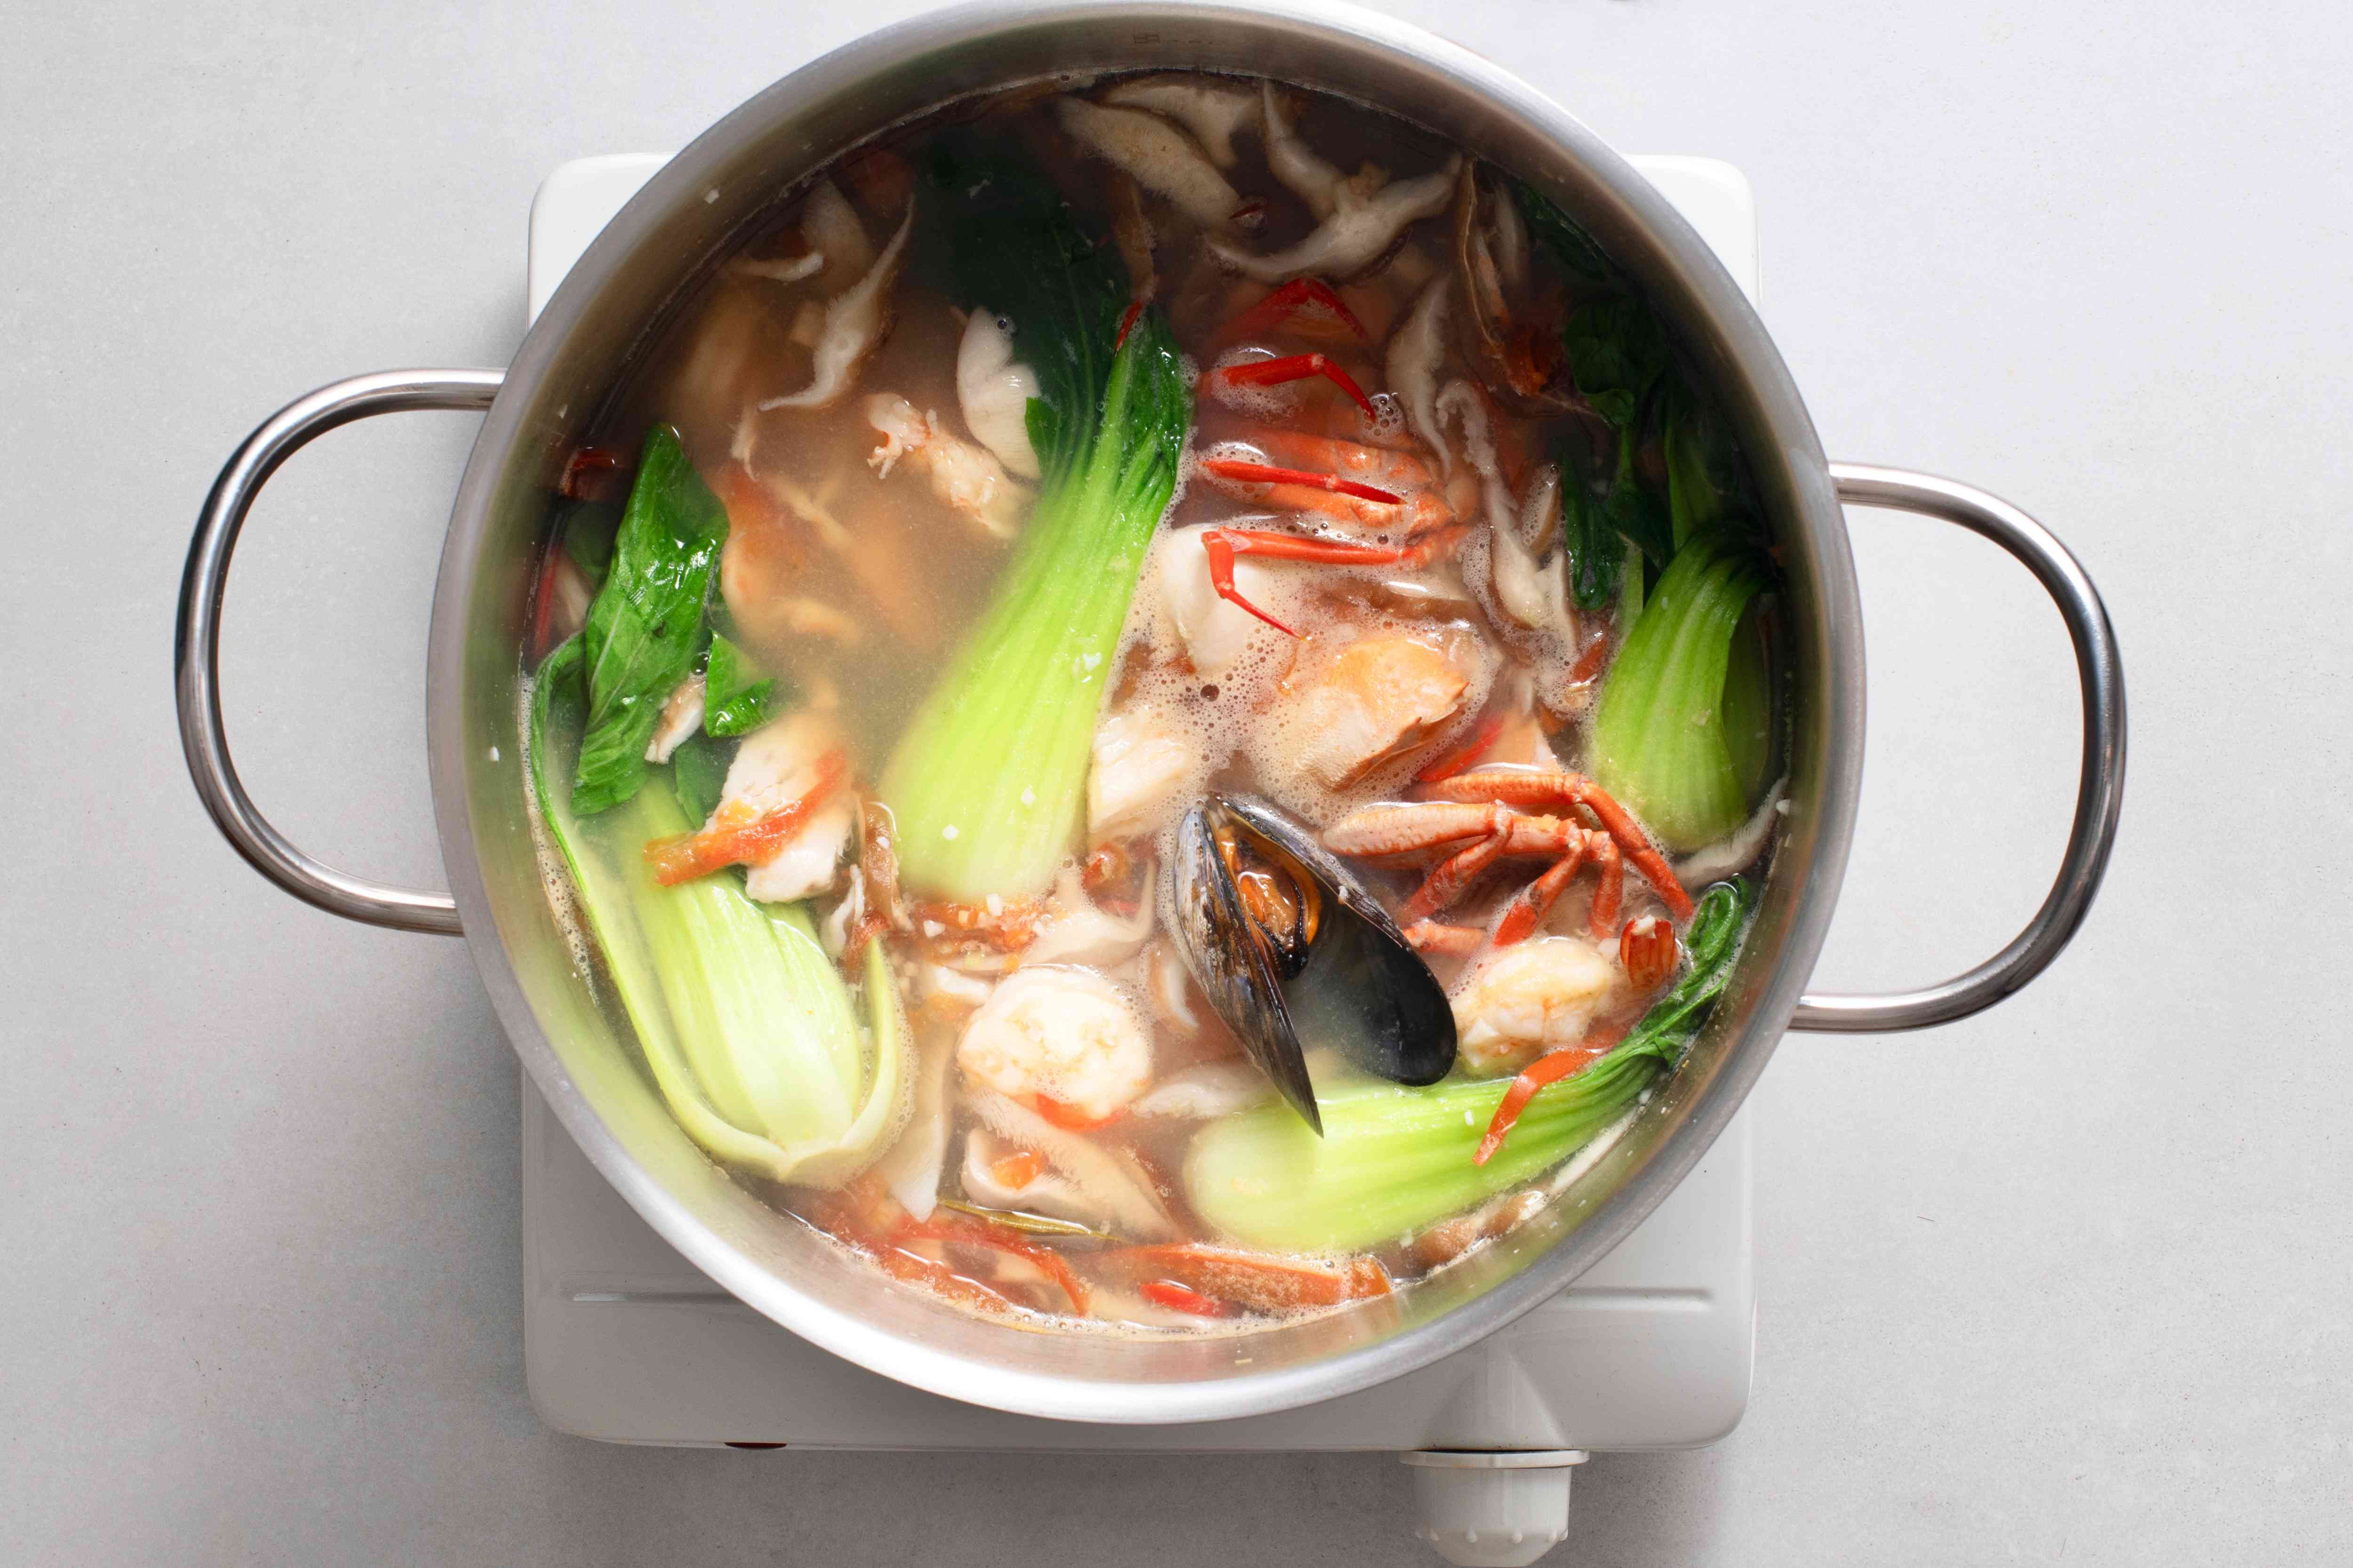 A pot of broth with bokchoy, mushrooms, seafood, and spices simmering